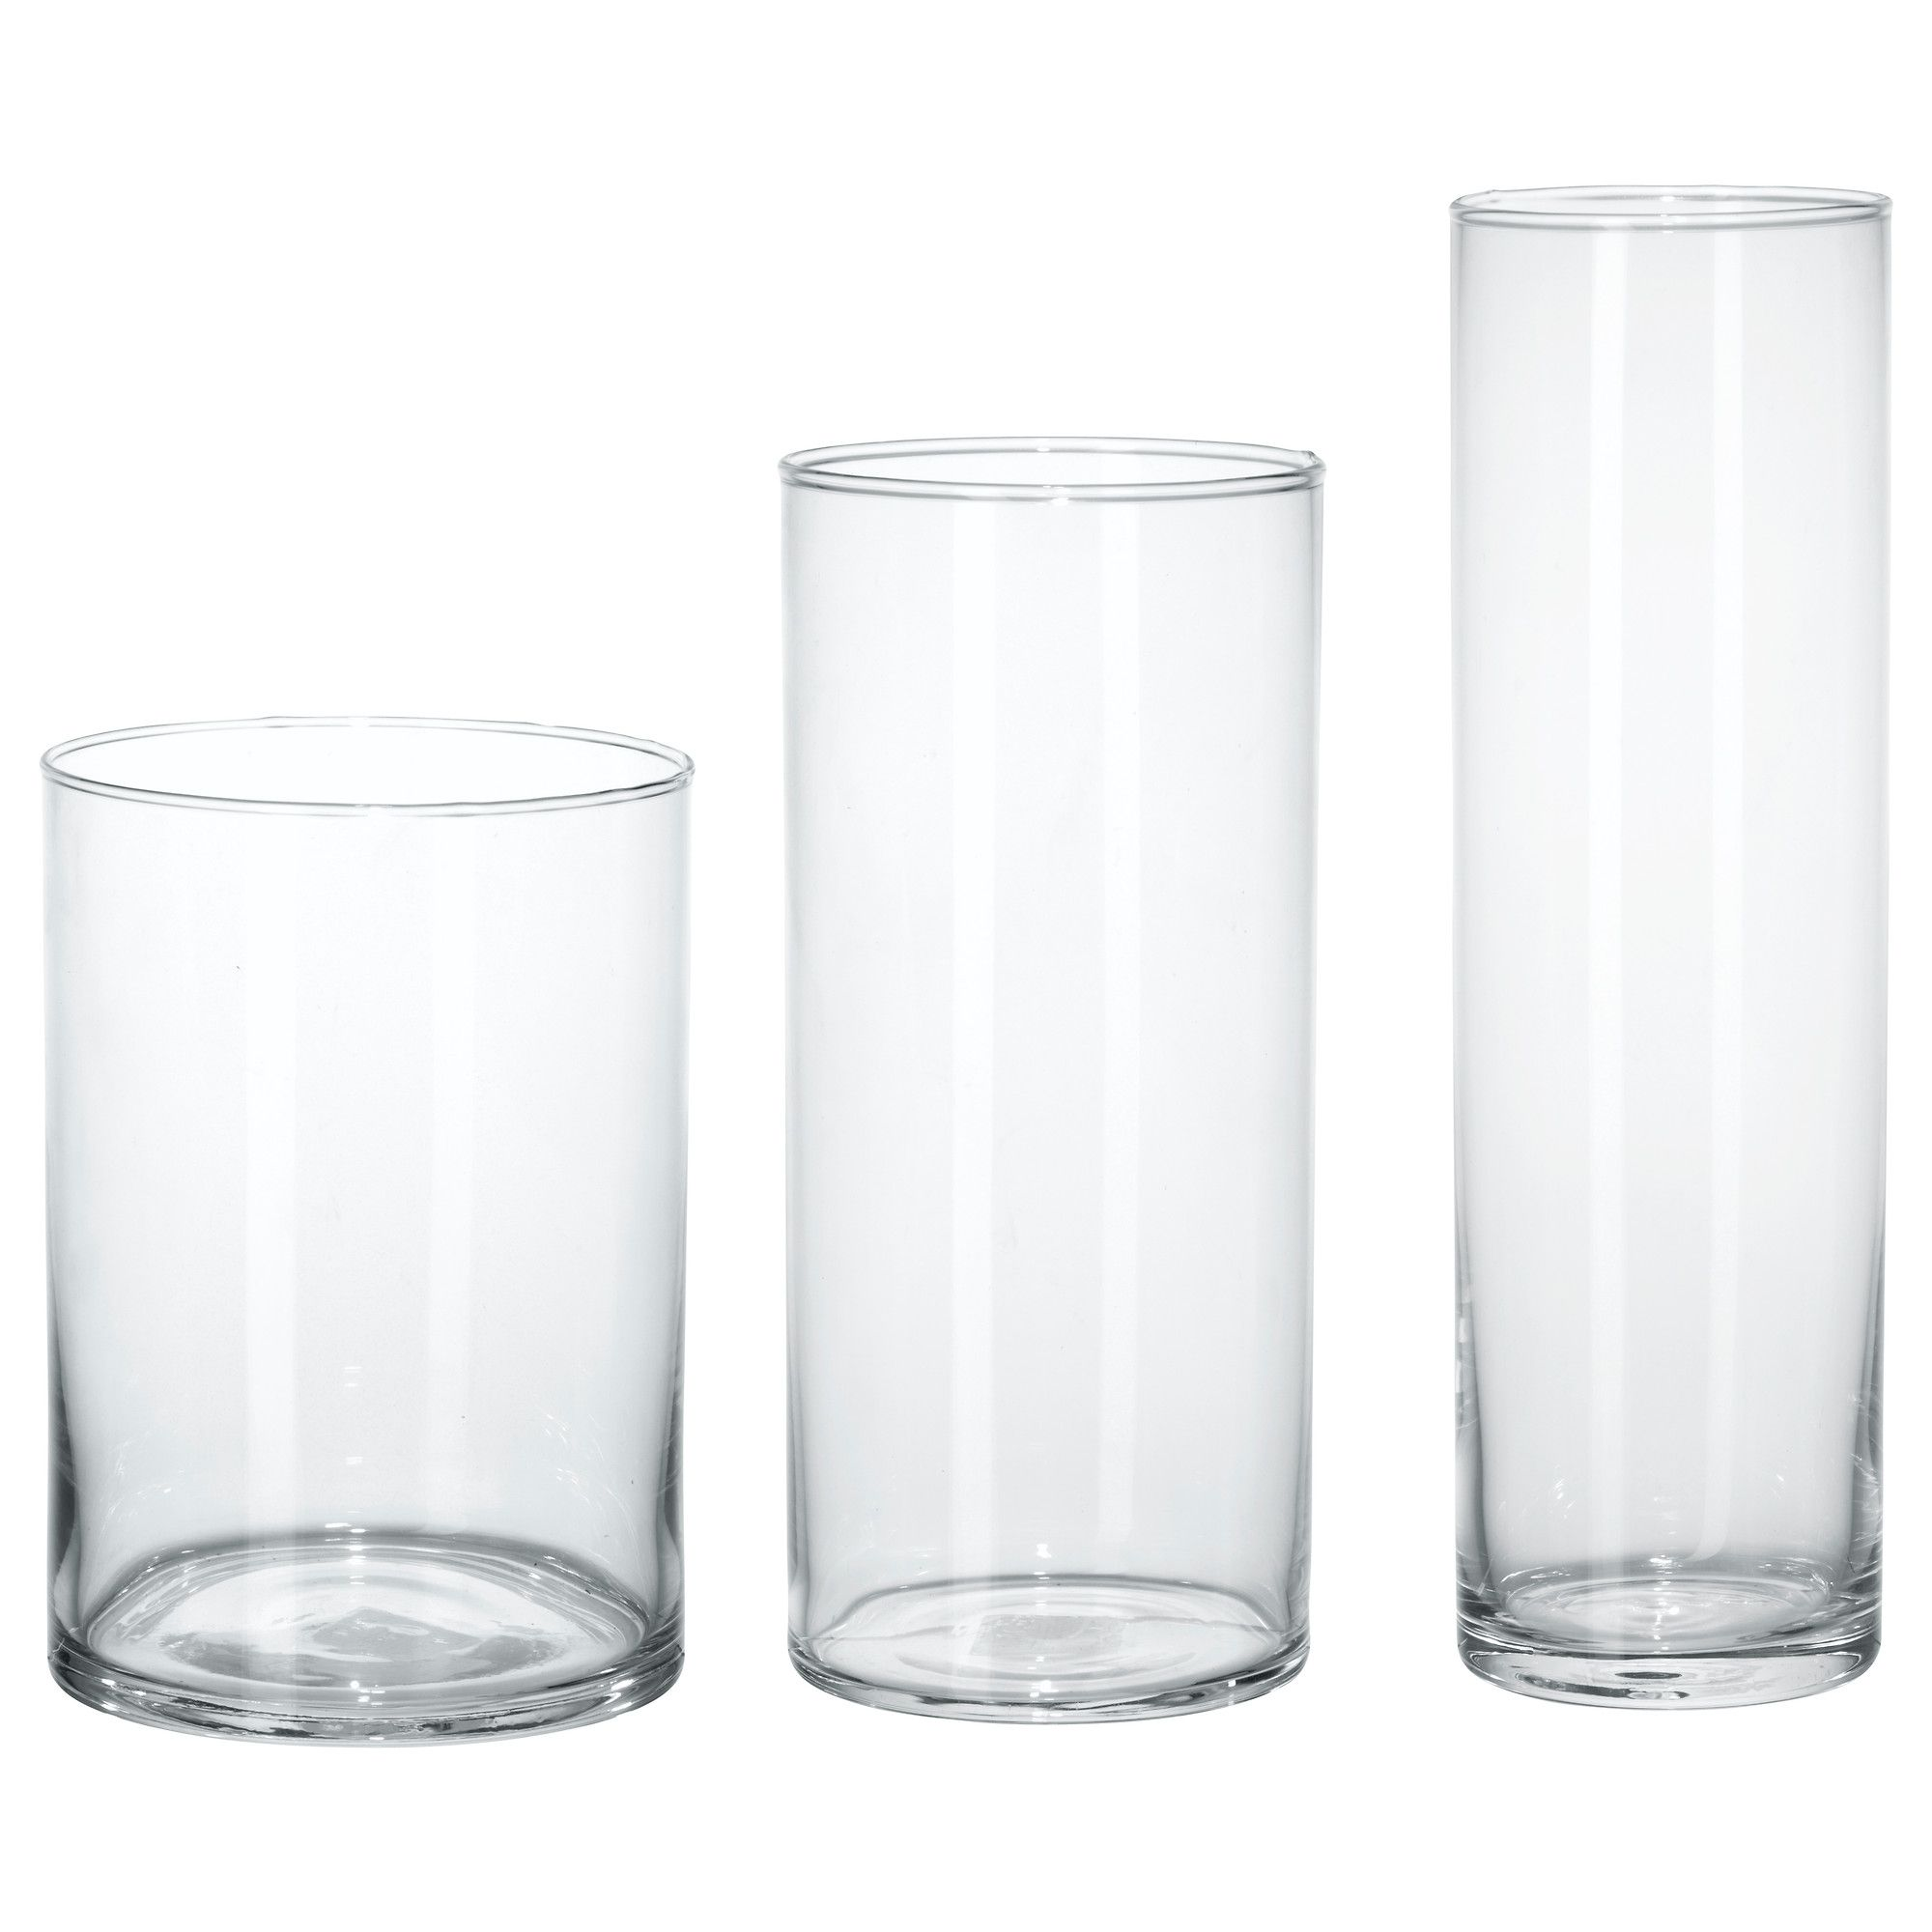 CYLINDER Vase set of 3 clear glass